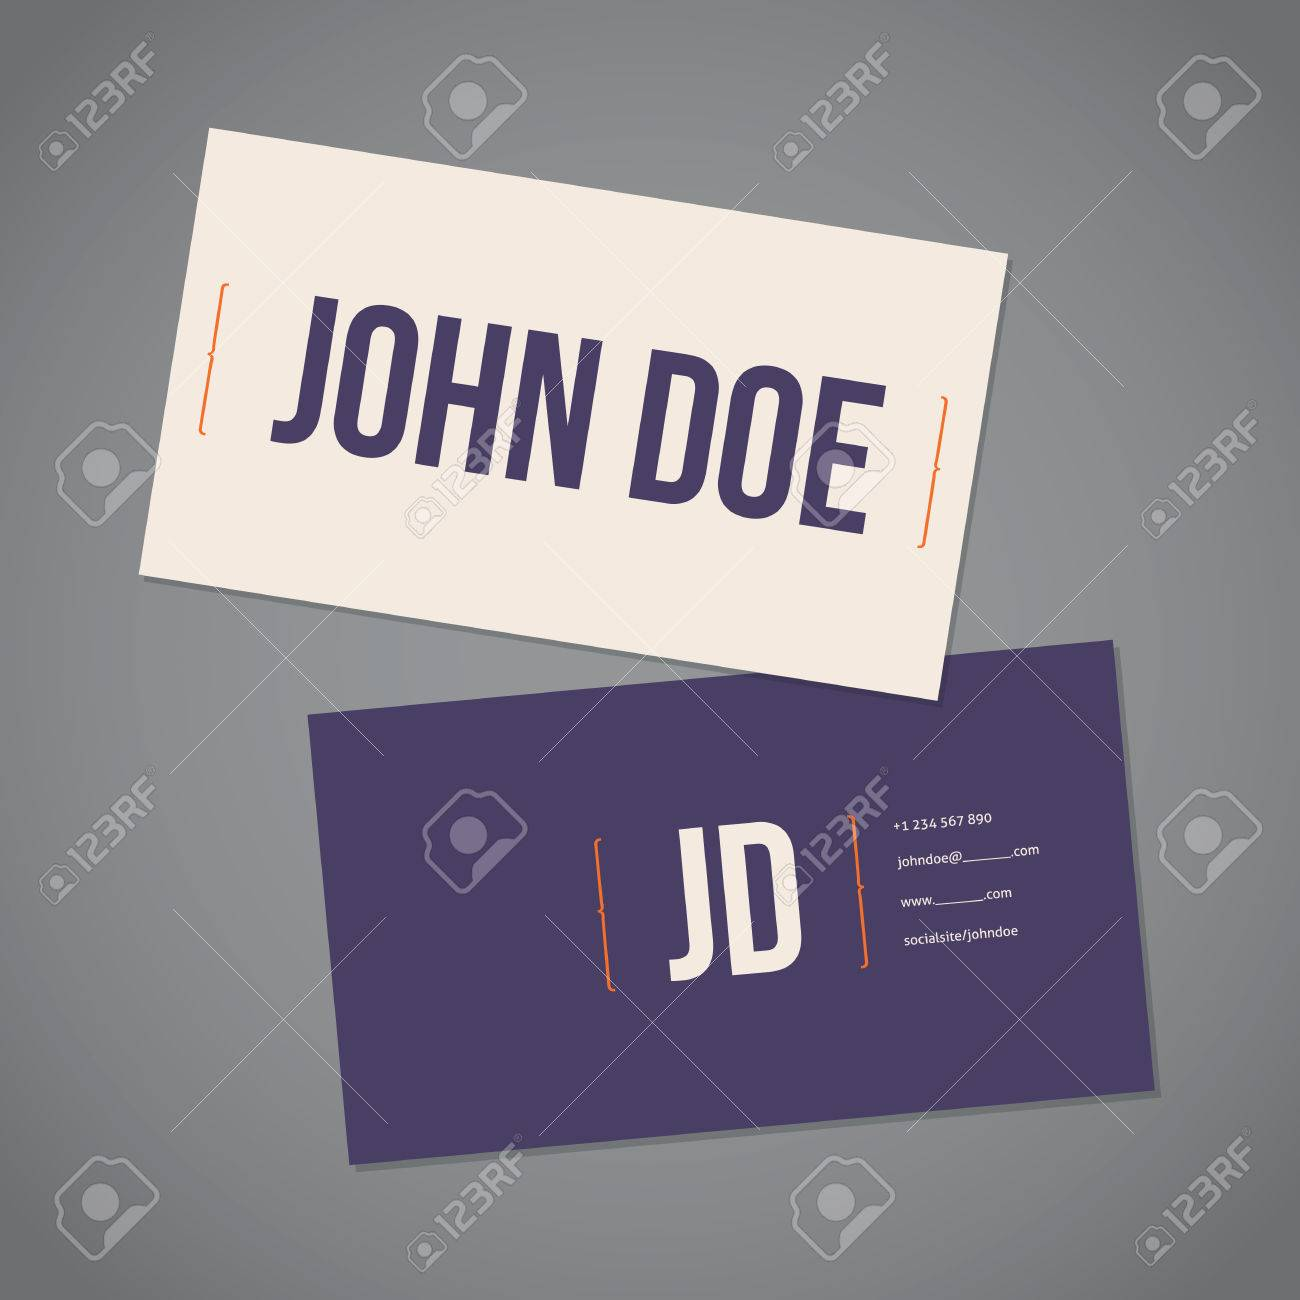 Simplistic Flat Business Card Template Design With Curly Brackets ...